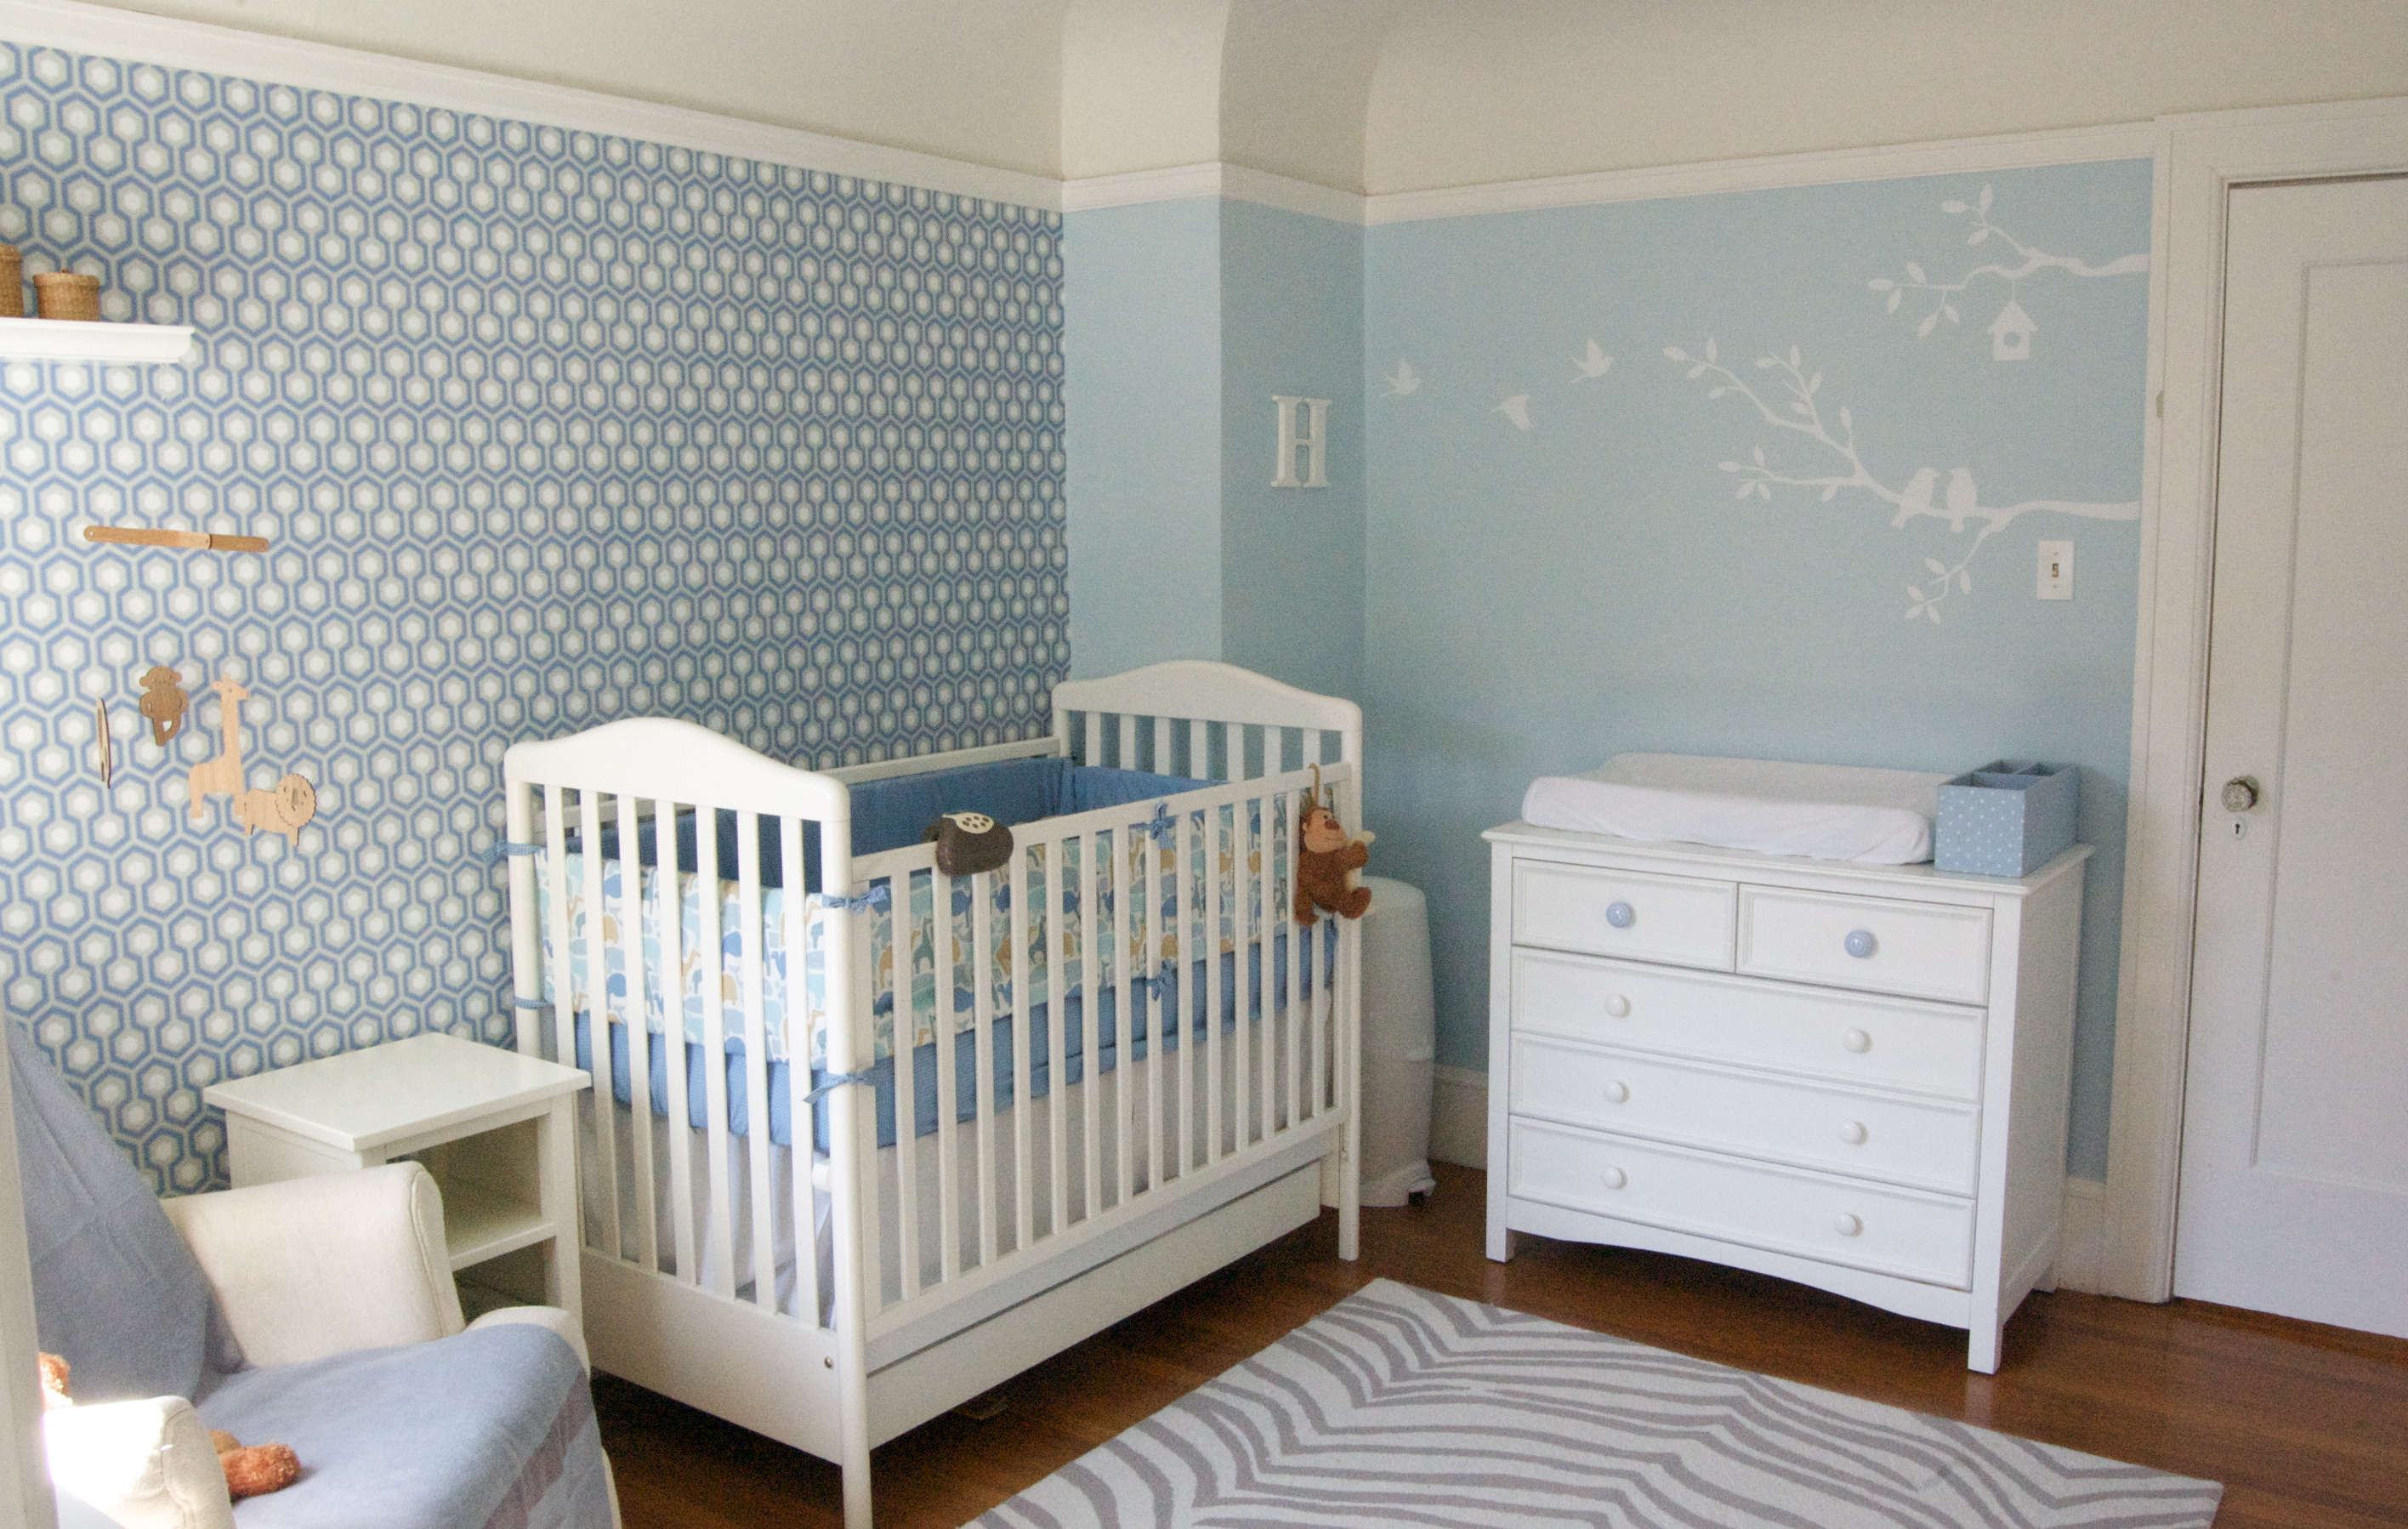 1000 images about baby room ideas on pinterest for Baby boy bedroom decoration